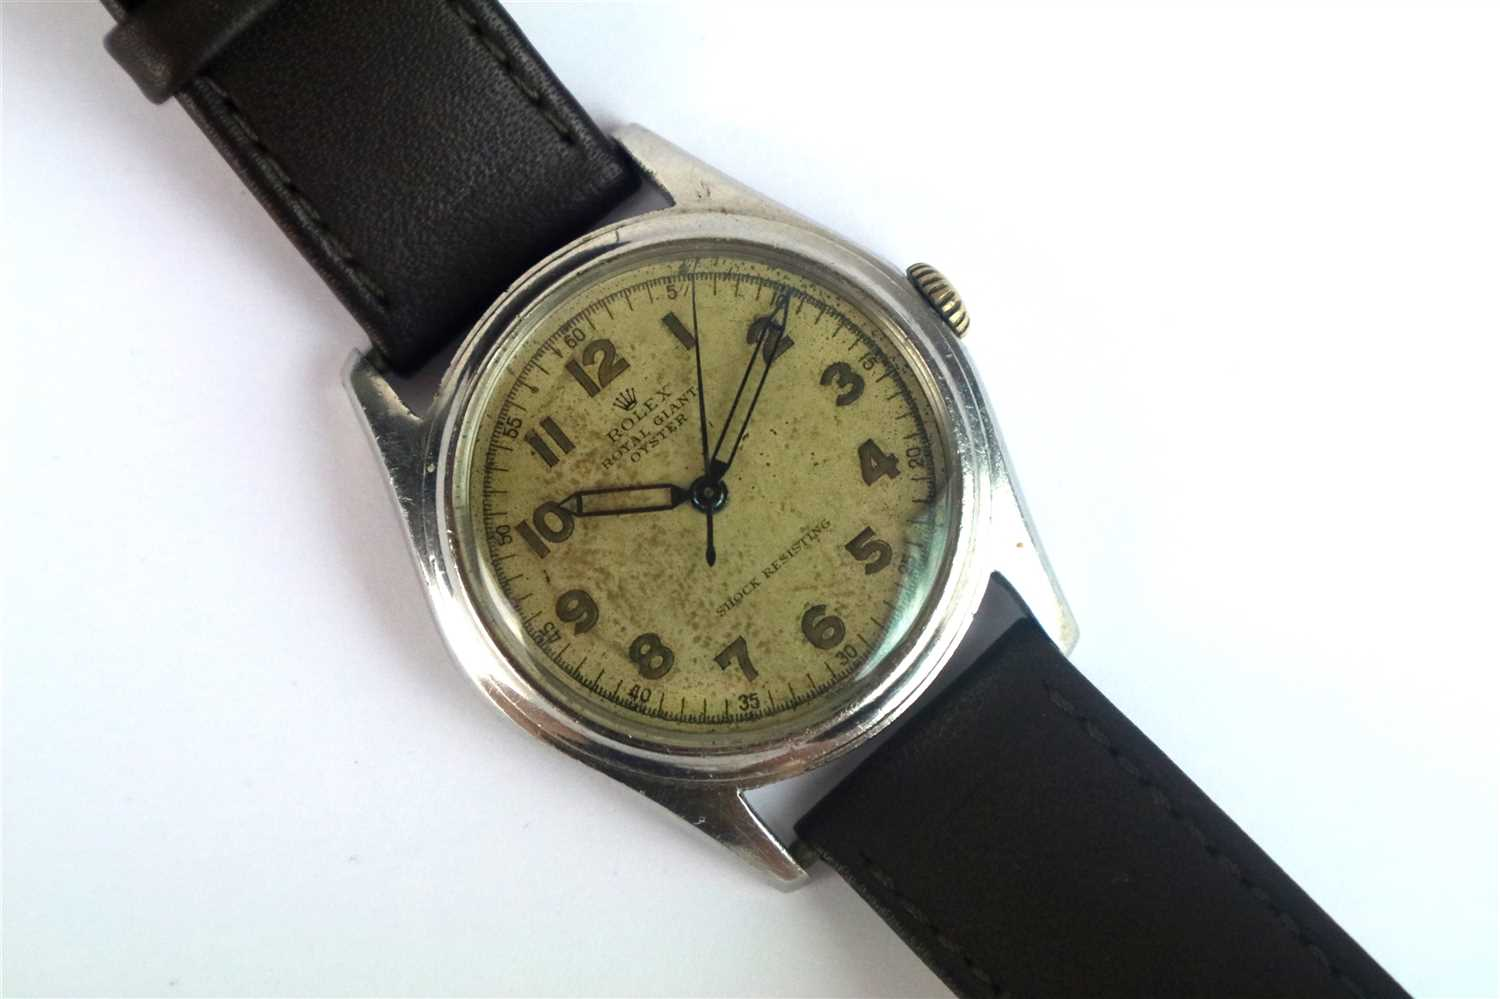 Lot 239-A Gentleman's Rolex Oyster Royal Giant Double Reference Wristwatch